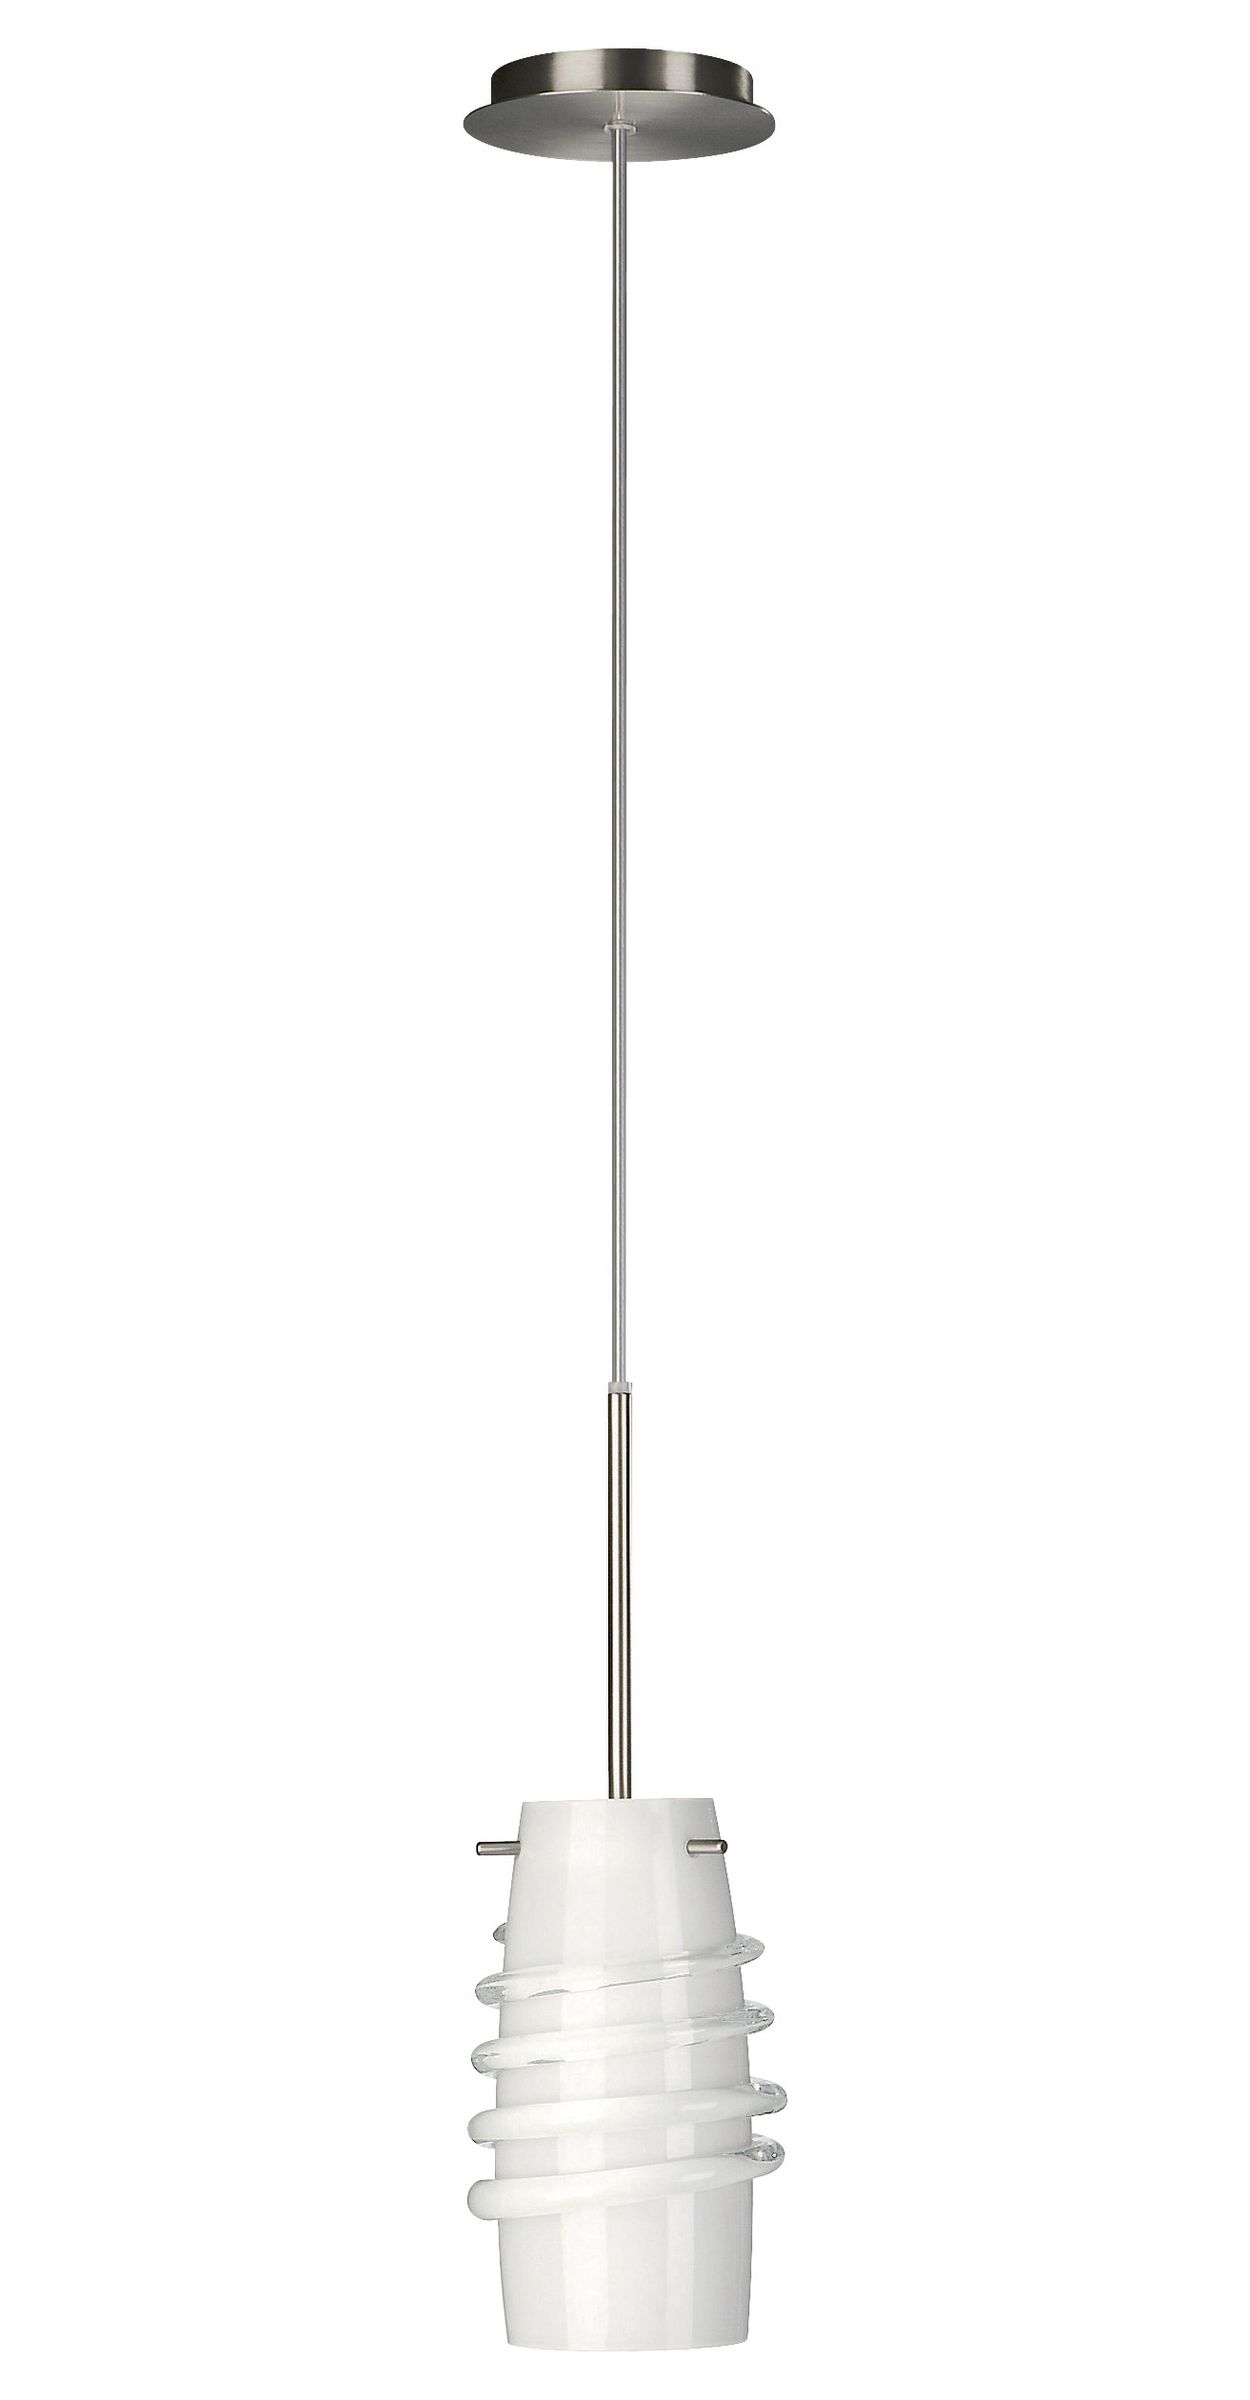 Agrippa 1-light Pendant in Satin Nickel finish